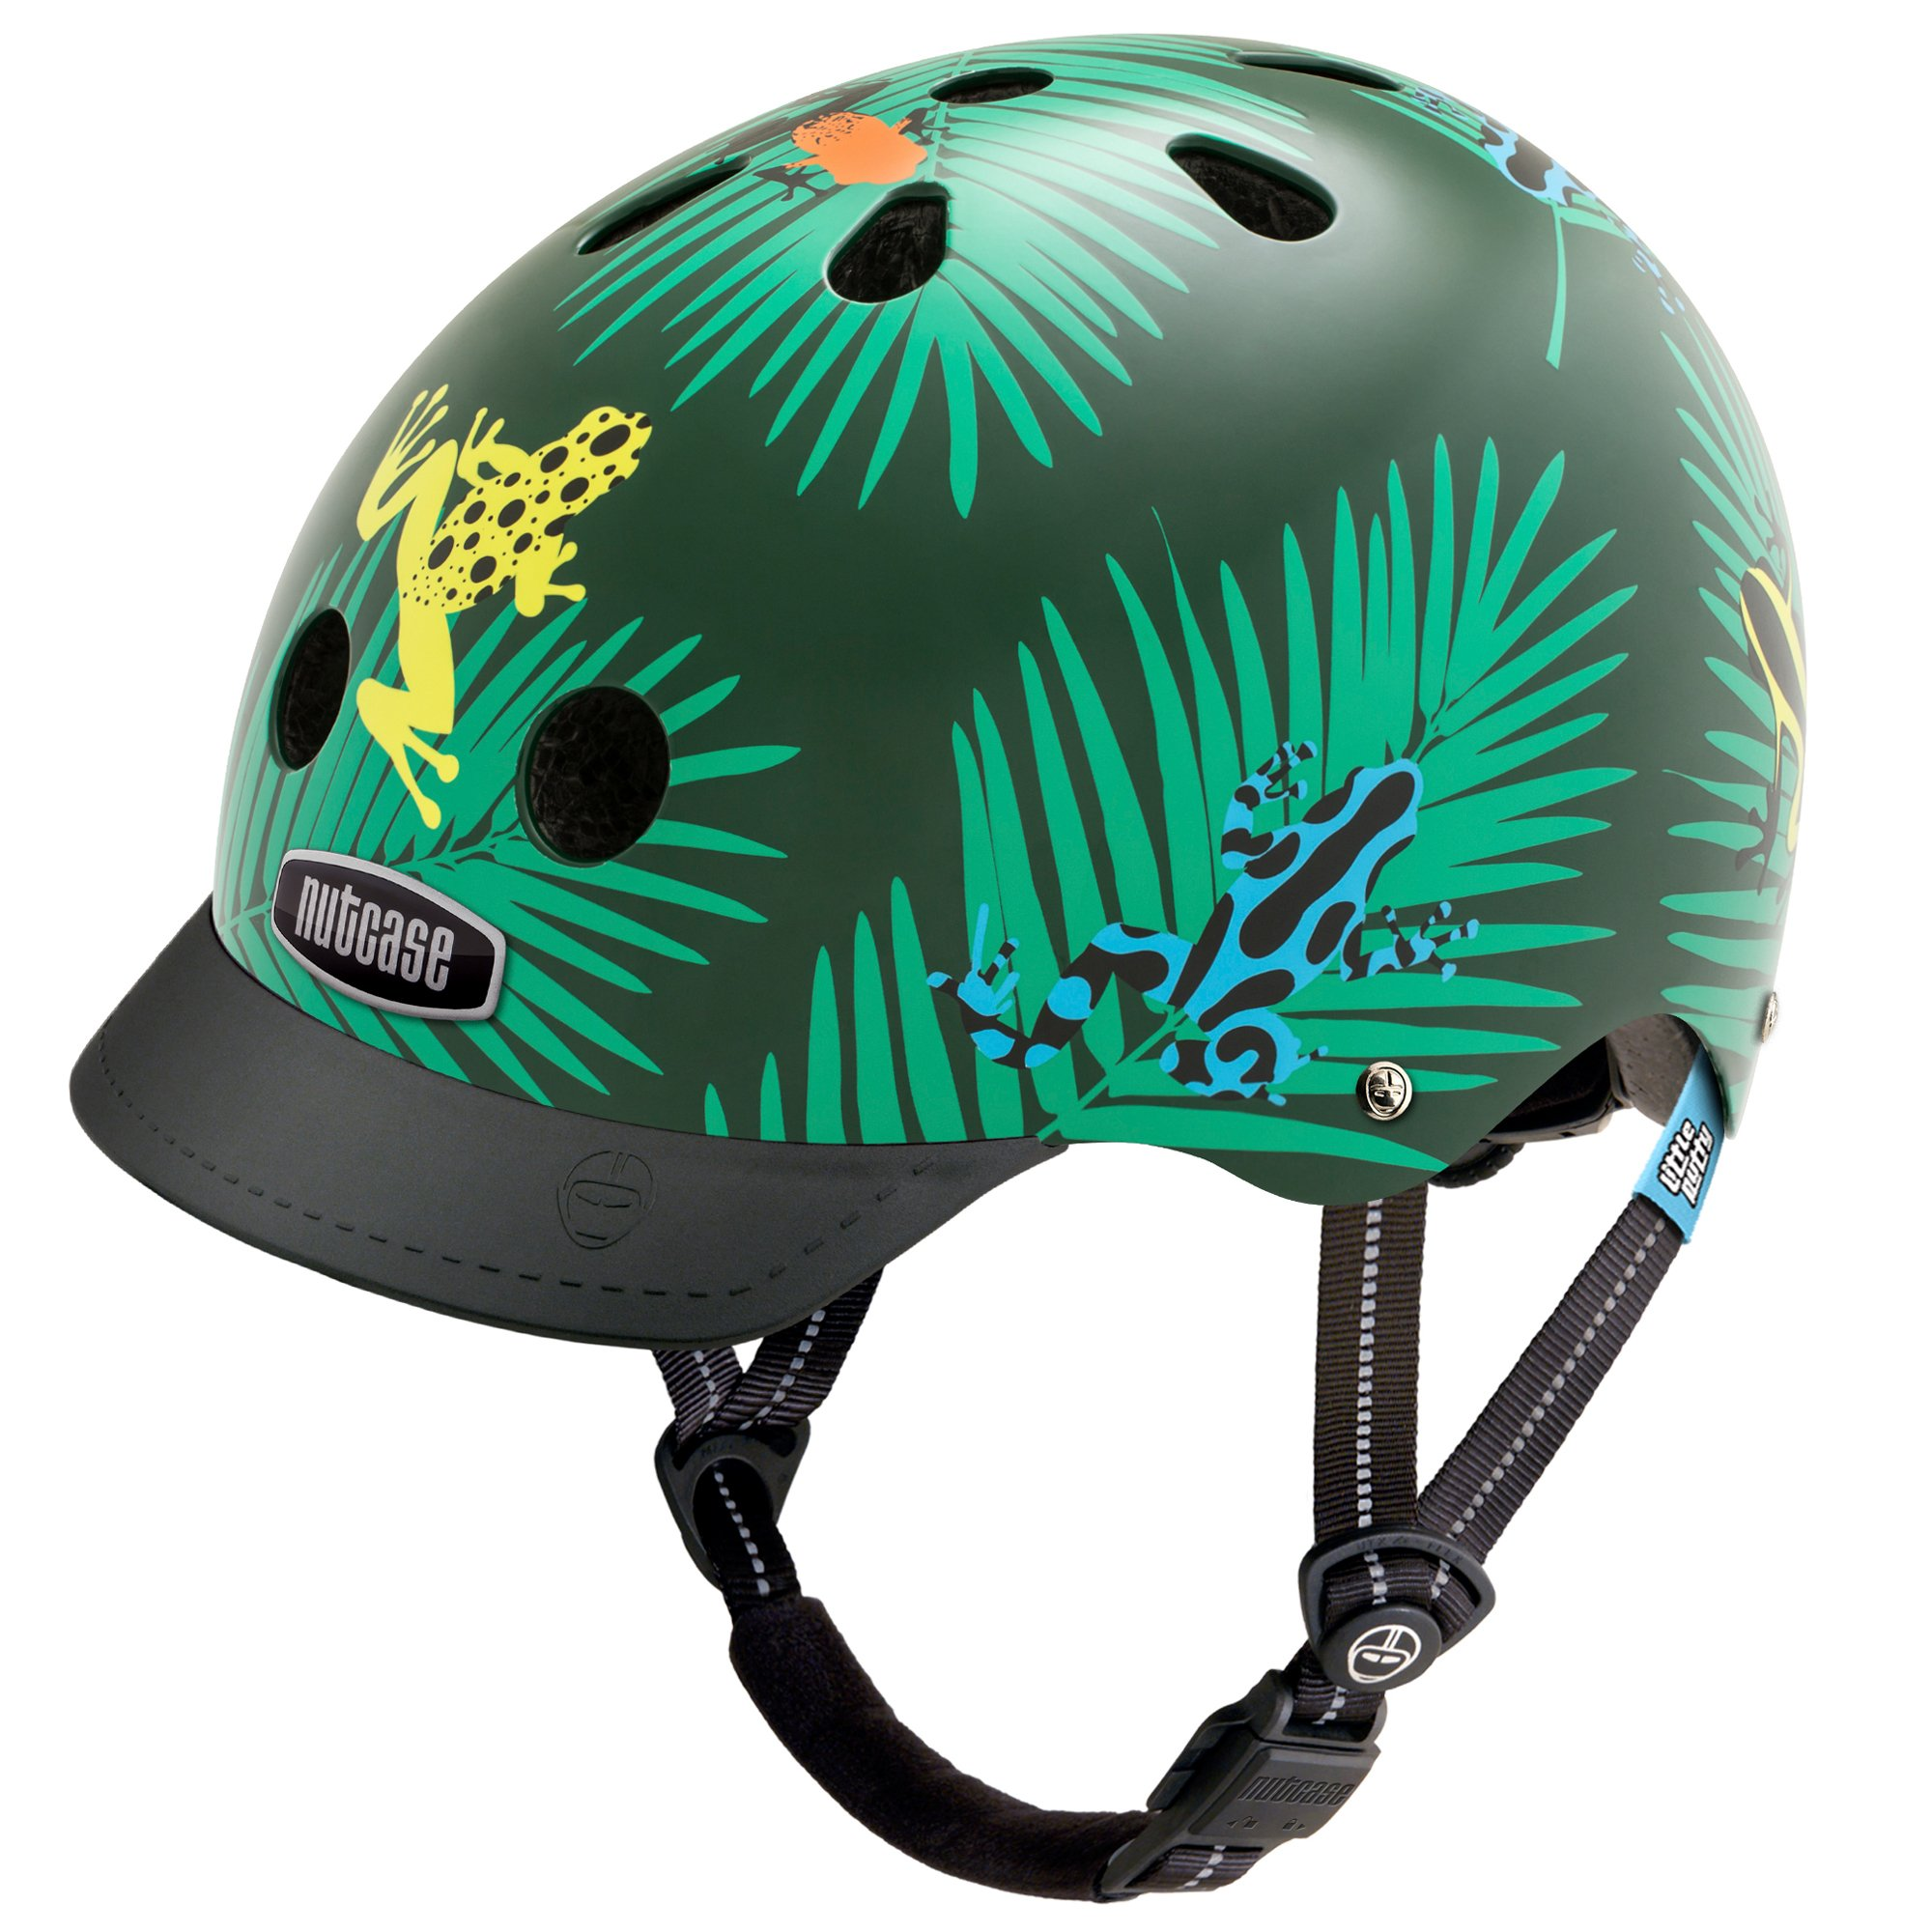 Nutcase -  Little Nutty Bike Helmet for Kids, Dart Frogs